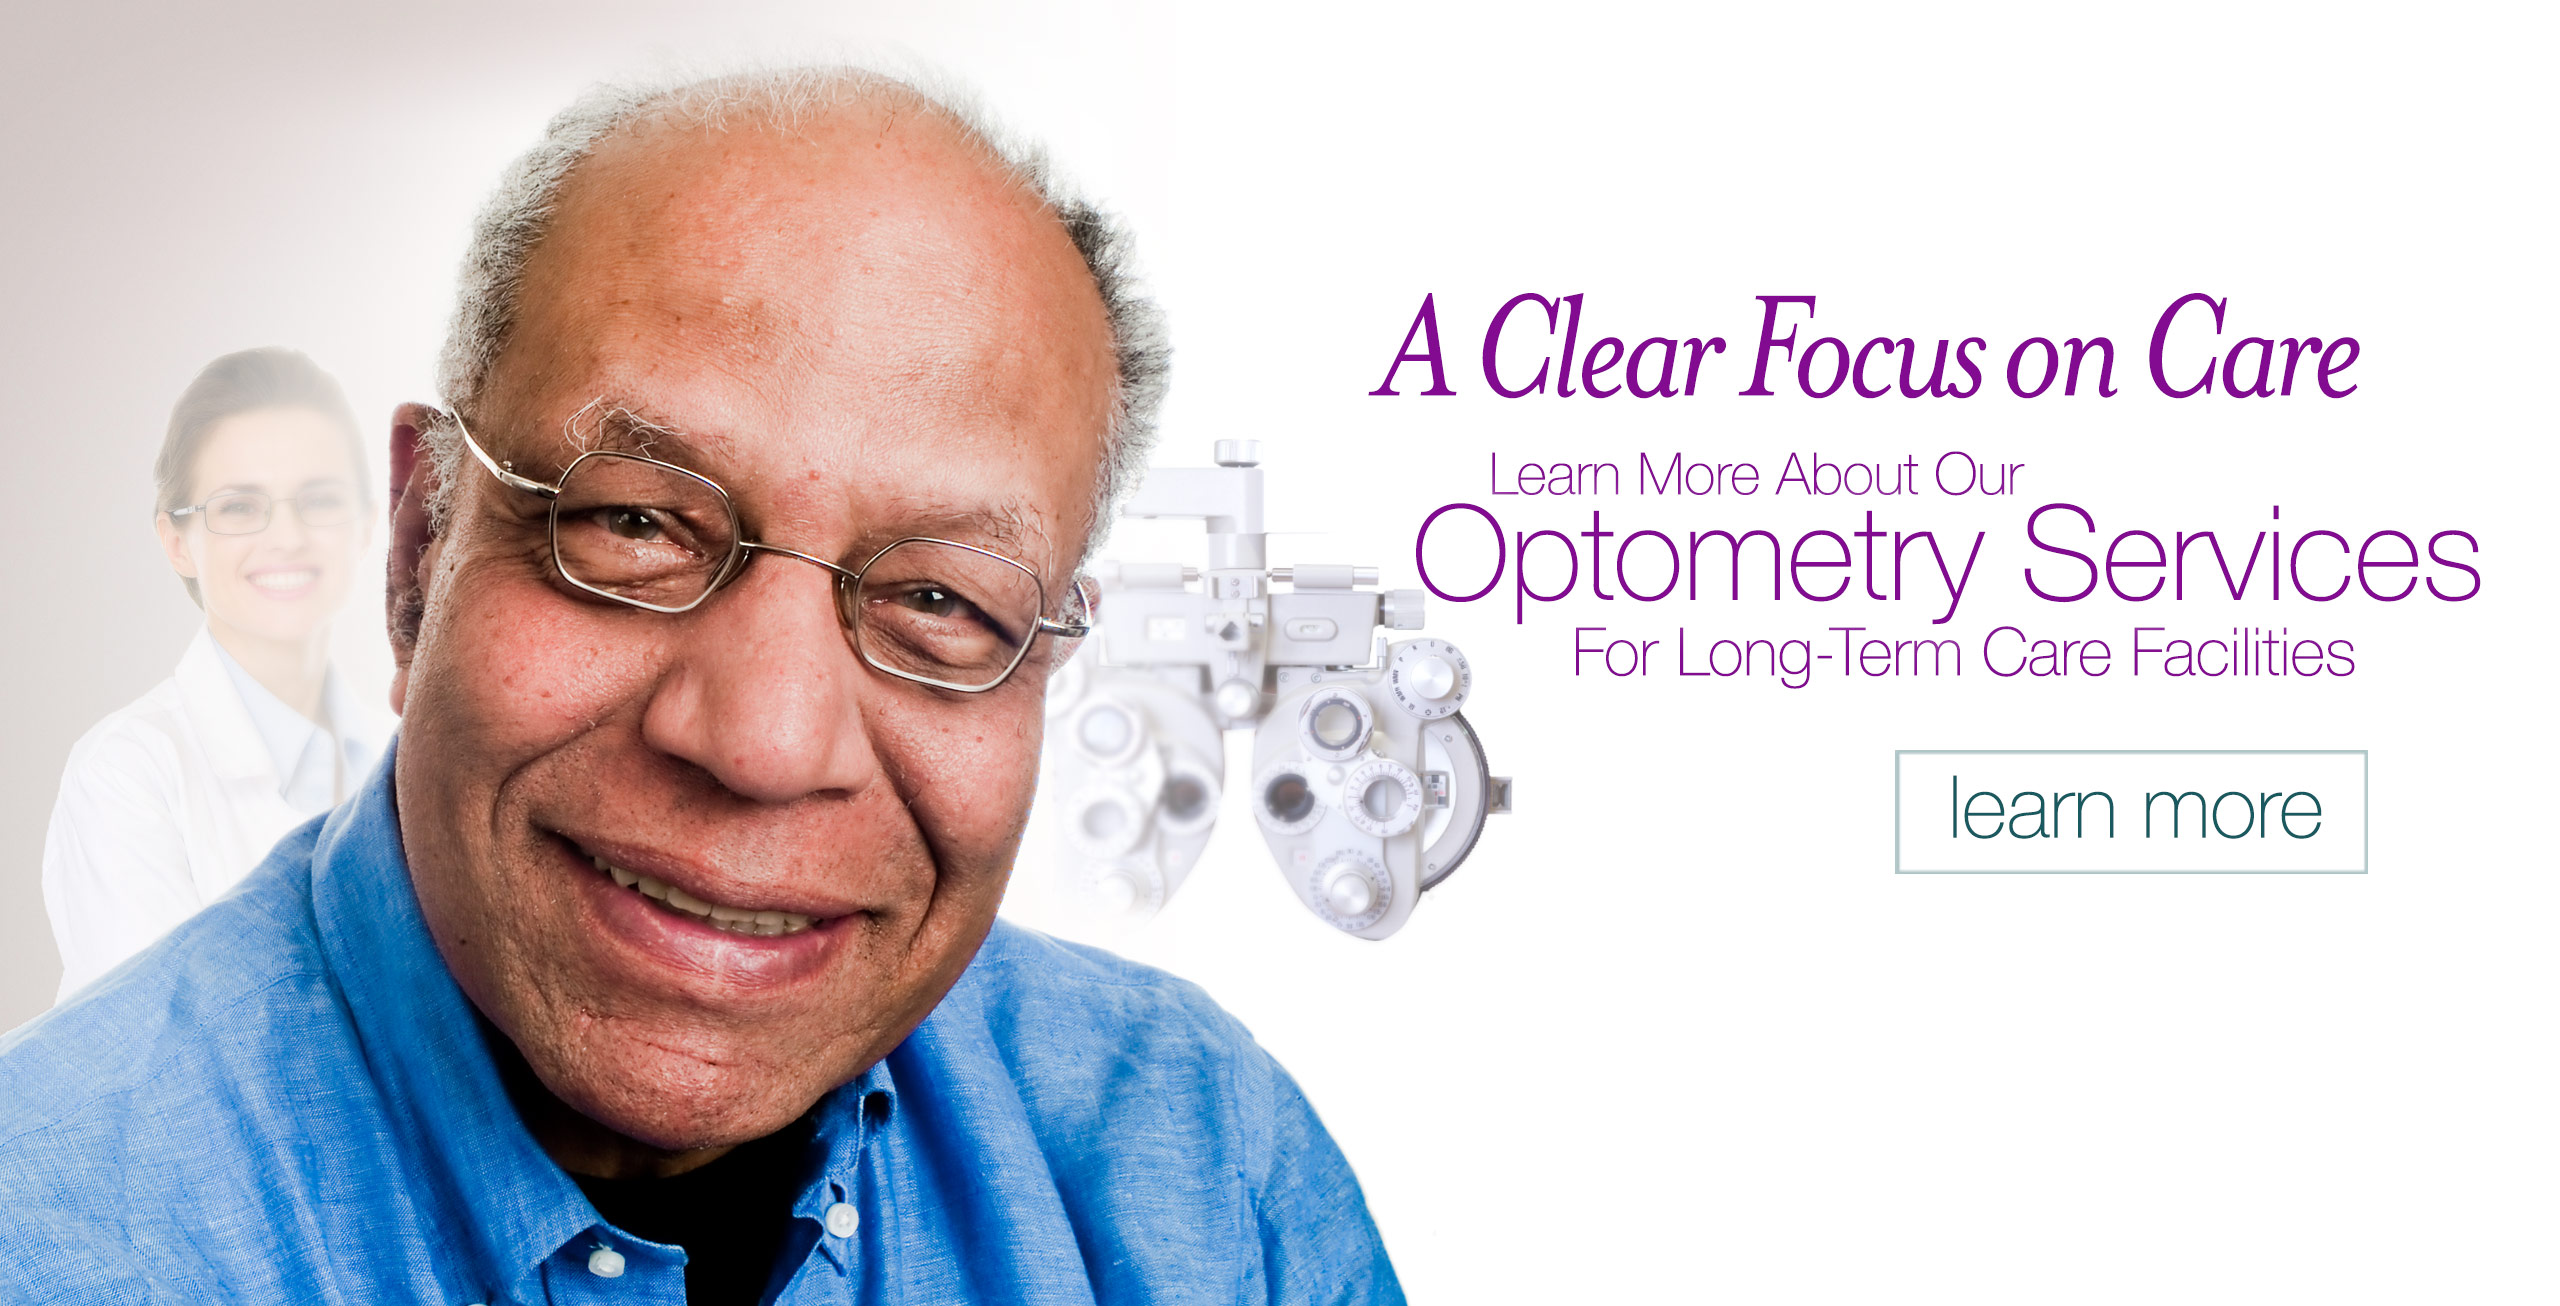 On-Site Optometry Services for Nursing Homes and Long-Term Care Facilities